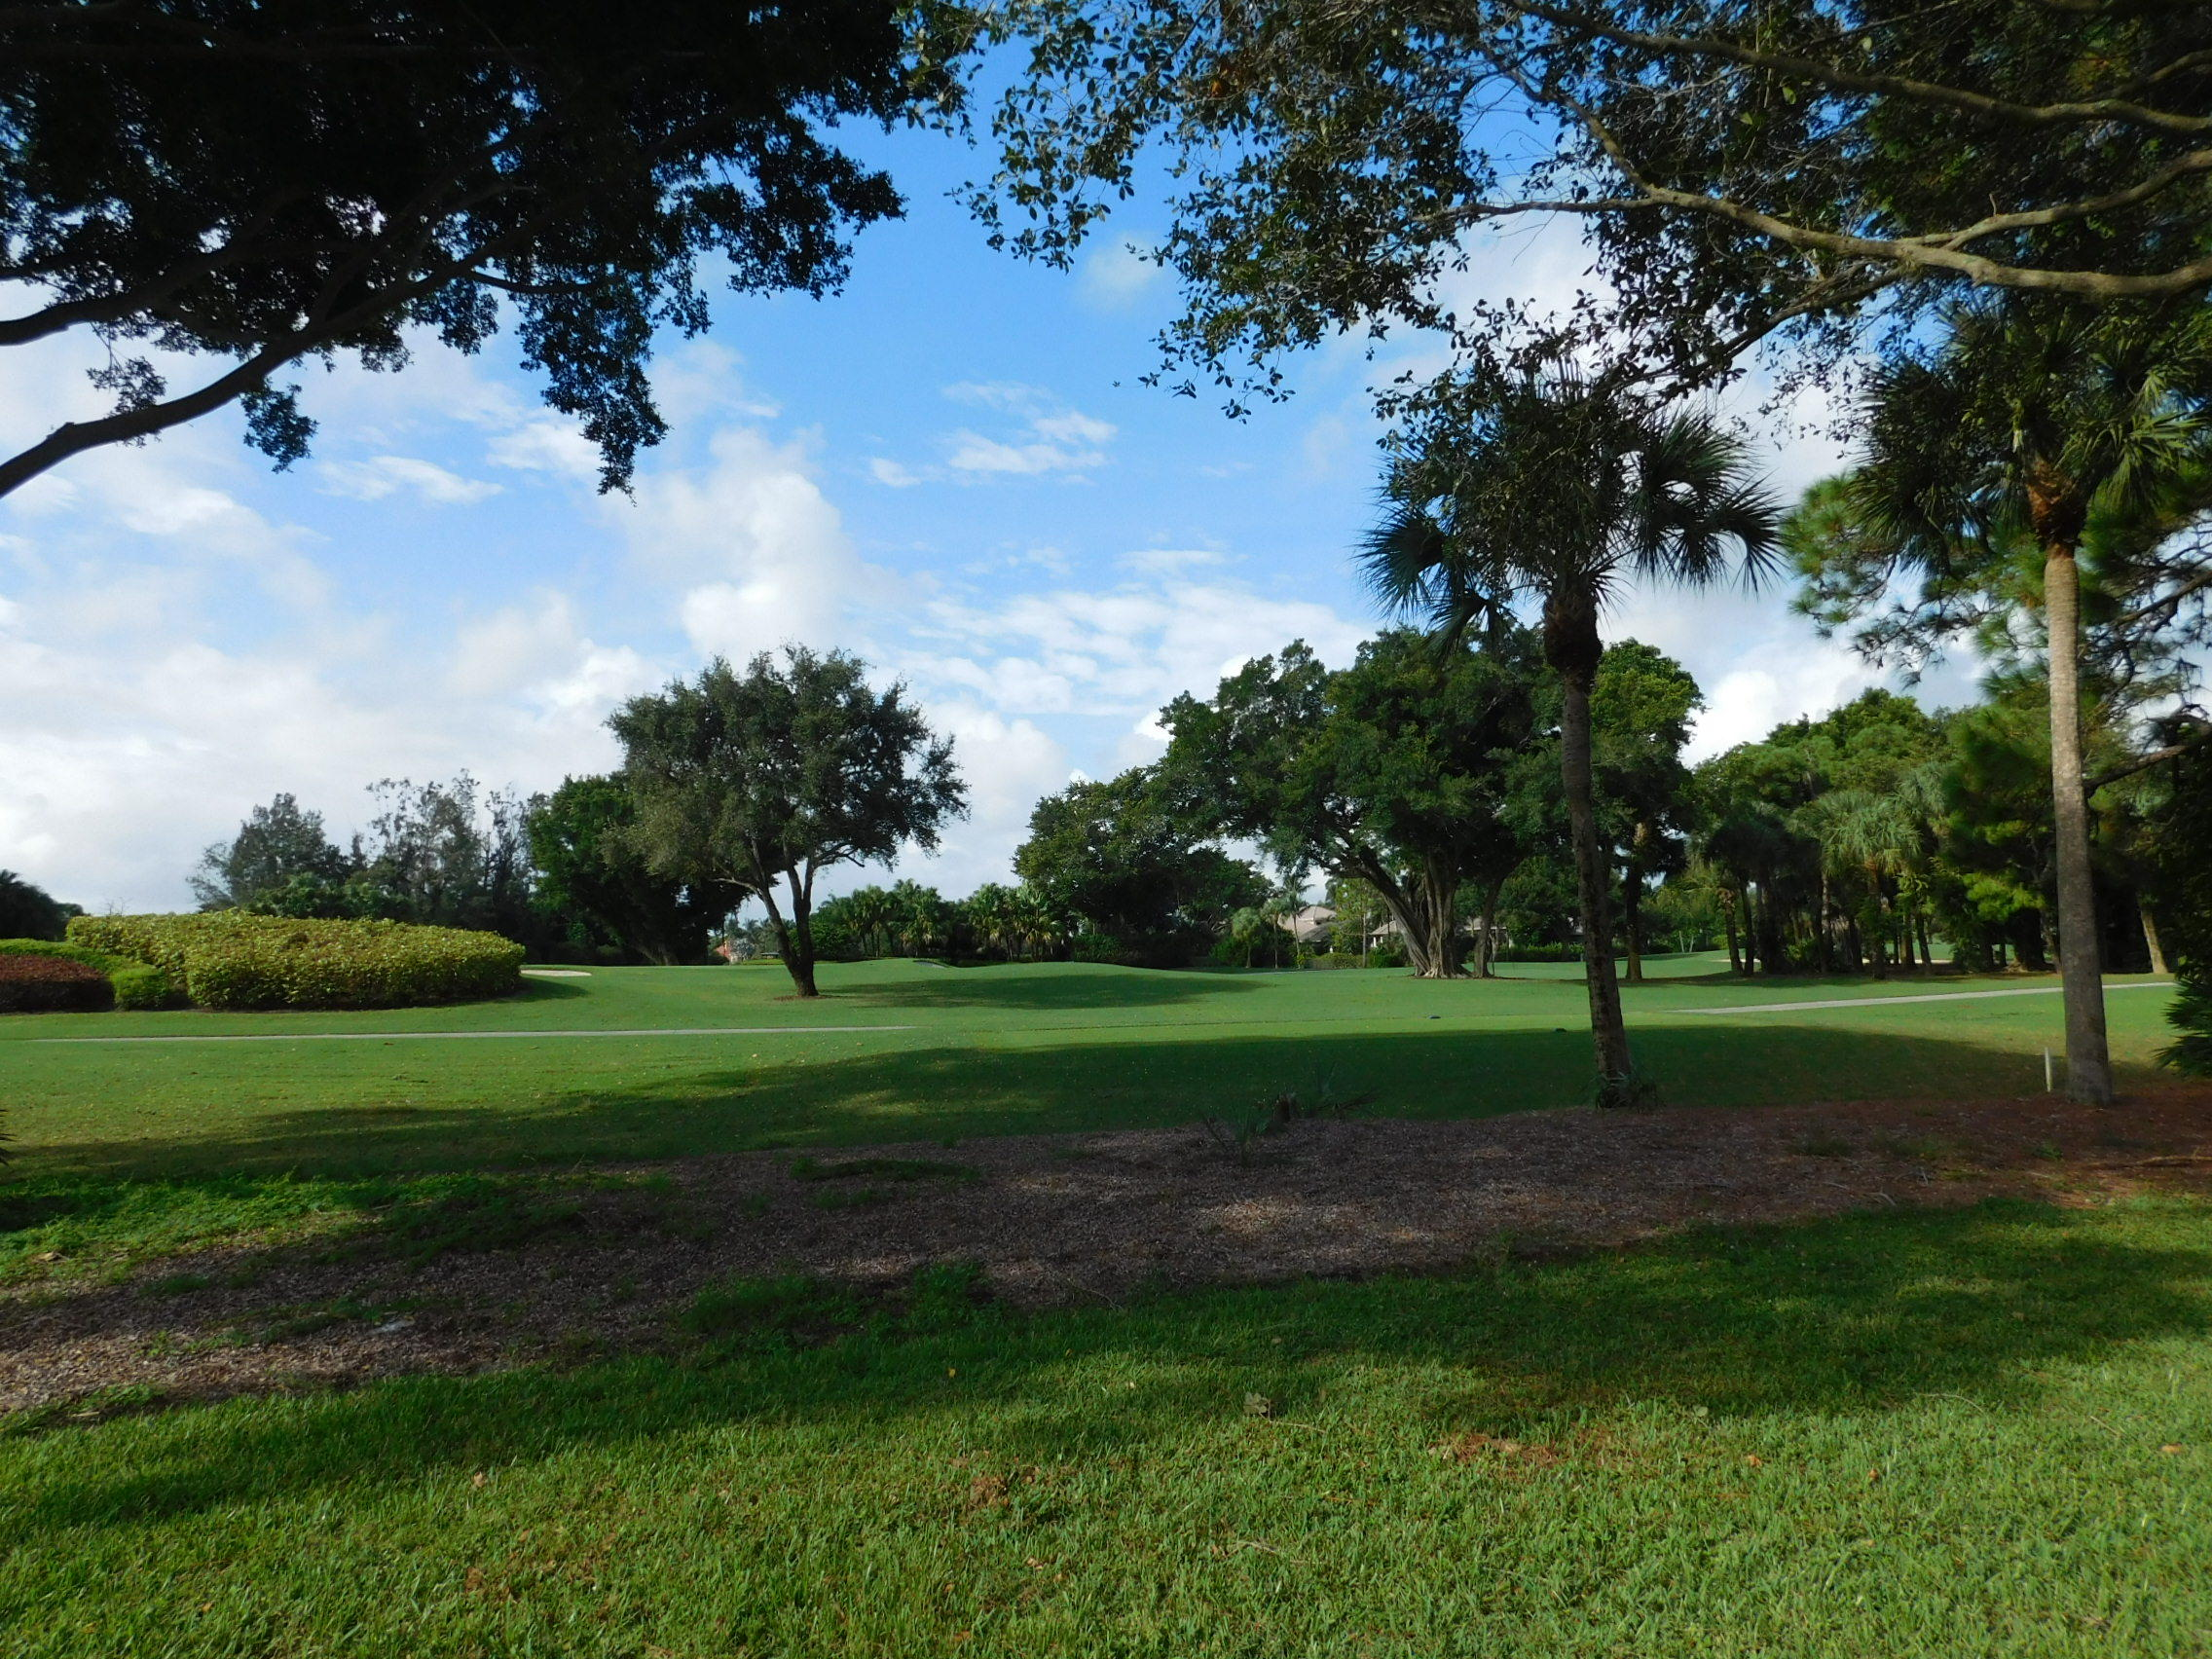 PGA NATIONAL PALM BEACH GARDENS